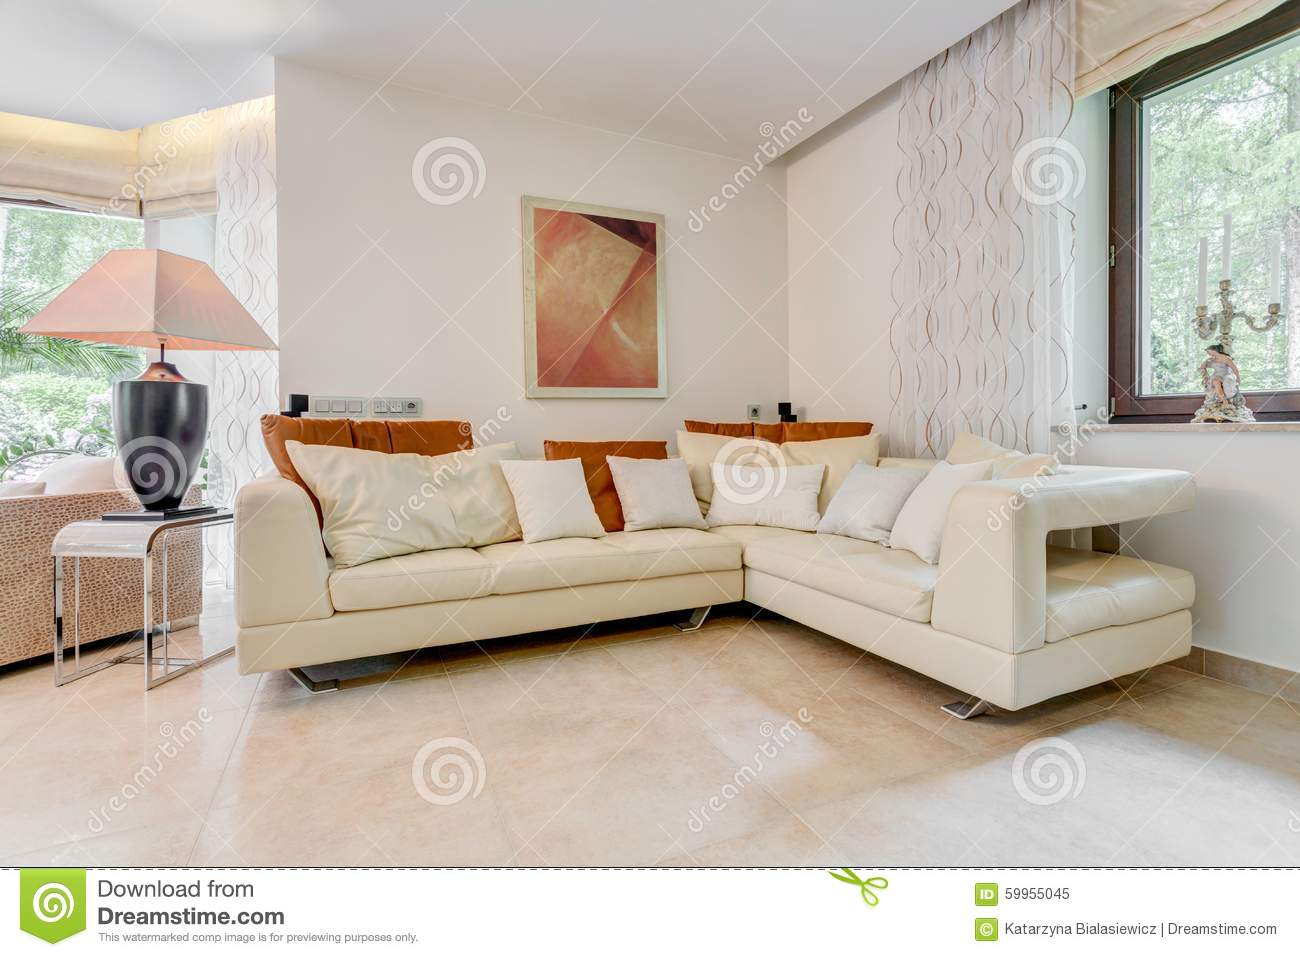 Fabulous Elegant Angled Leather Sofa Stock Image Image Of Furnished Caraccident5 Cool Chair Designs And Ideas Caraccident5Info